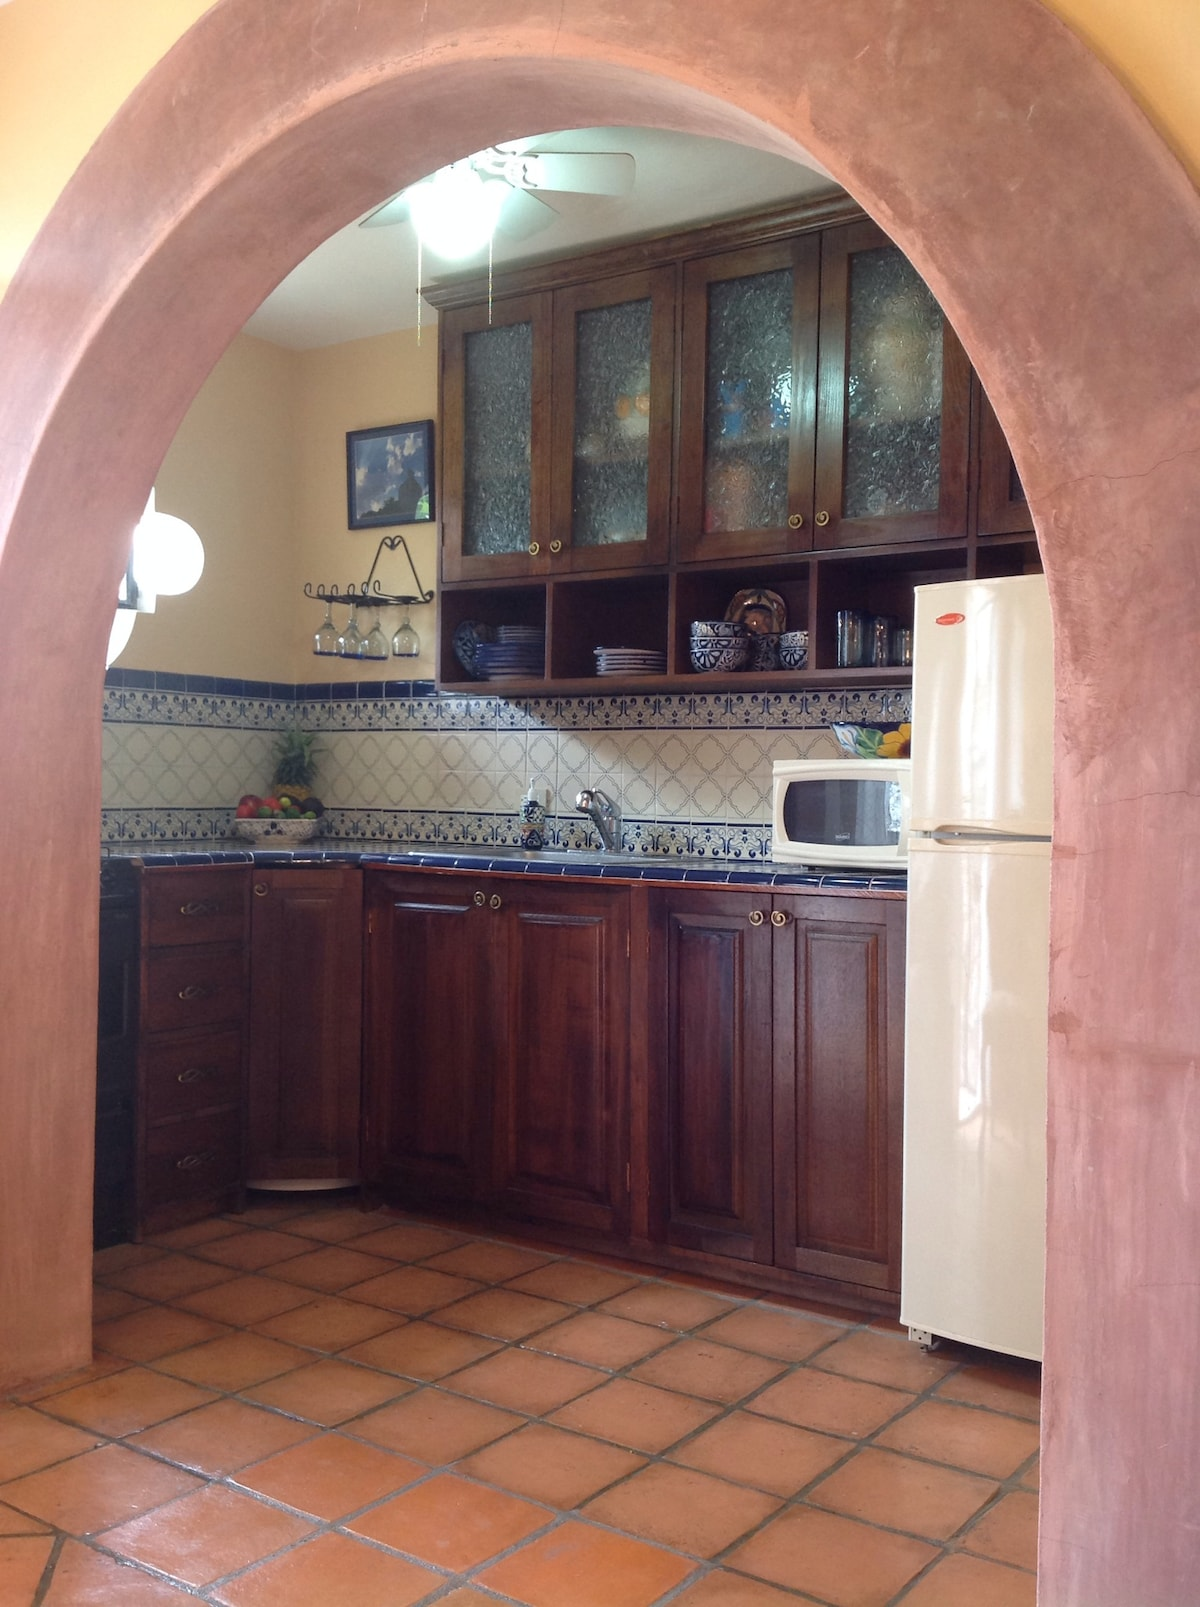 The kitchen is open for guests' use, although the food is so good and cheap in San Miguel that it's hard to want to cook!